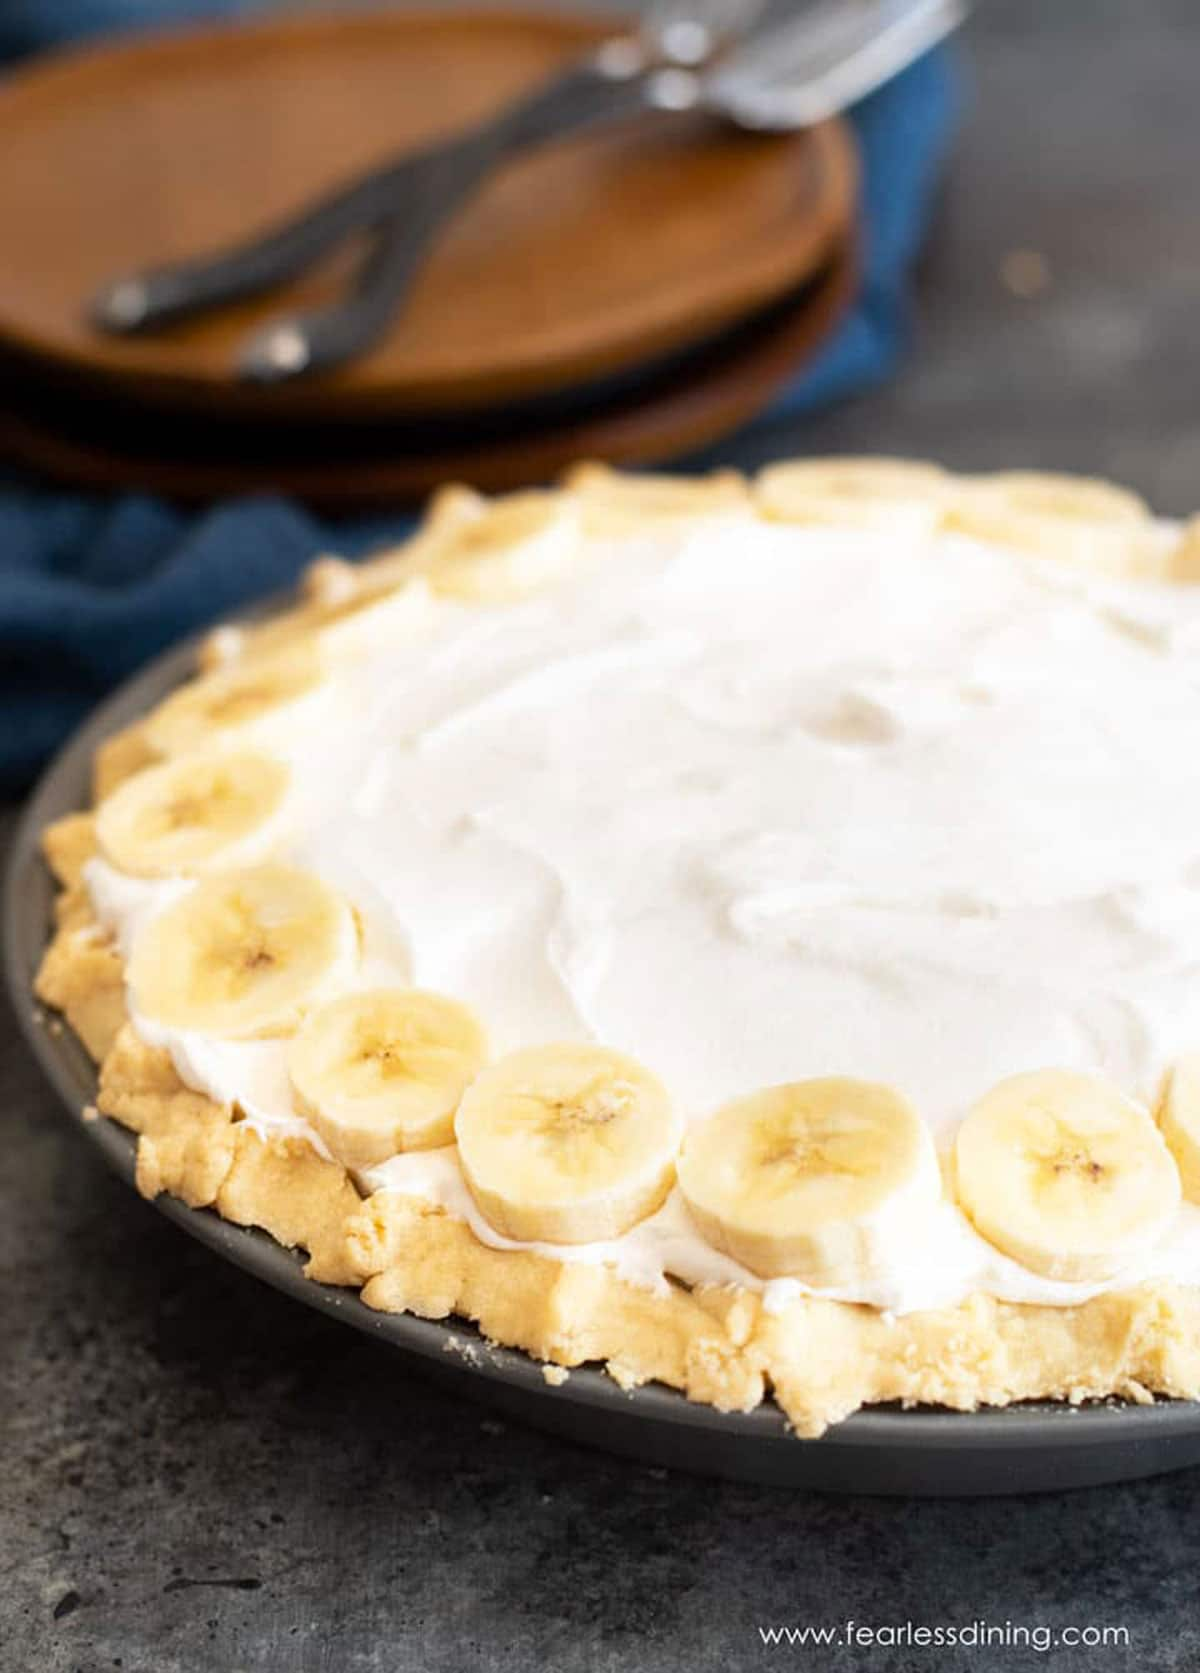 a whole gluten free banana cream pie on a table